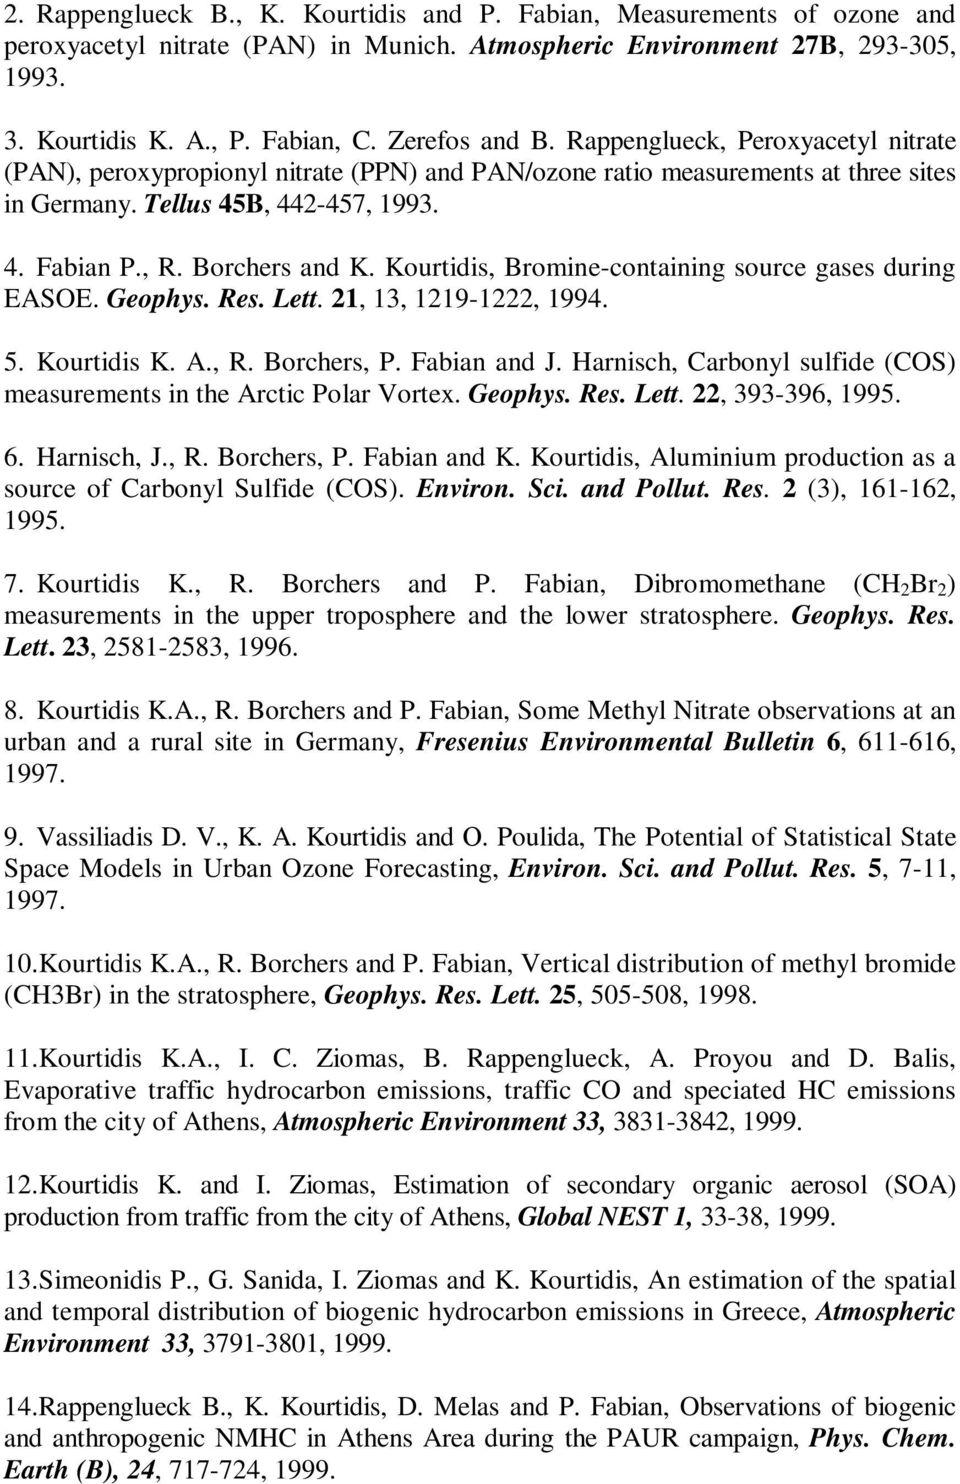 Borchers and K. Kourtidis, Bromine-containing source gases during EASOE. Geophys. Res. Lett. 21, 13, 1219-1222, 1994. 5. Kourtidis K. A., R. Borchers, P. Fabian and J.